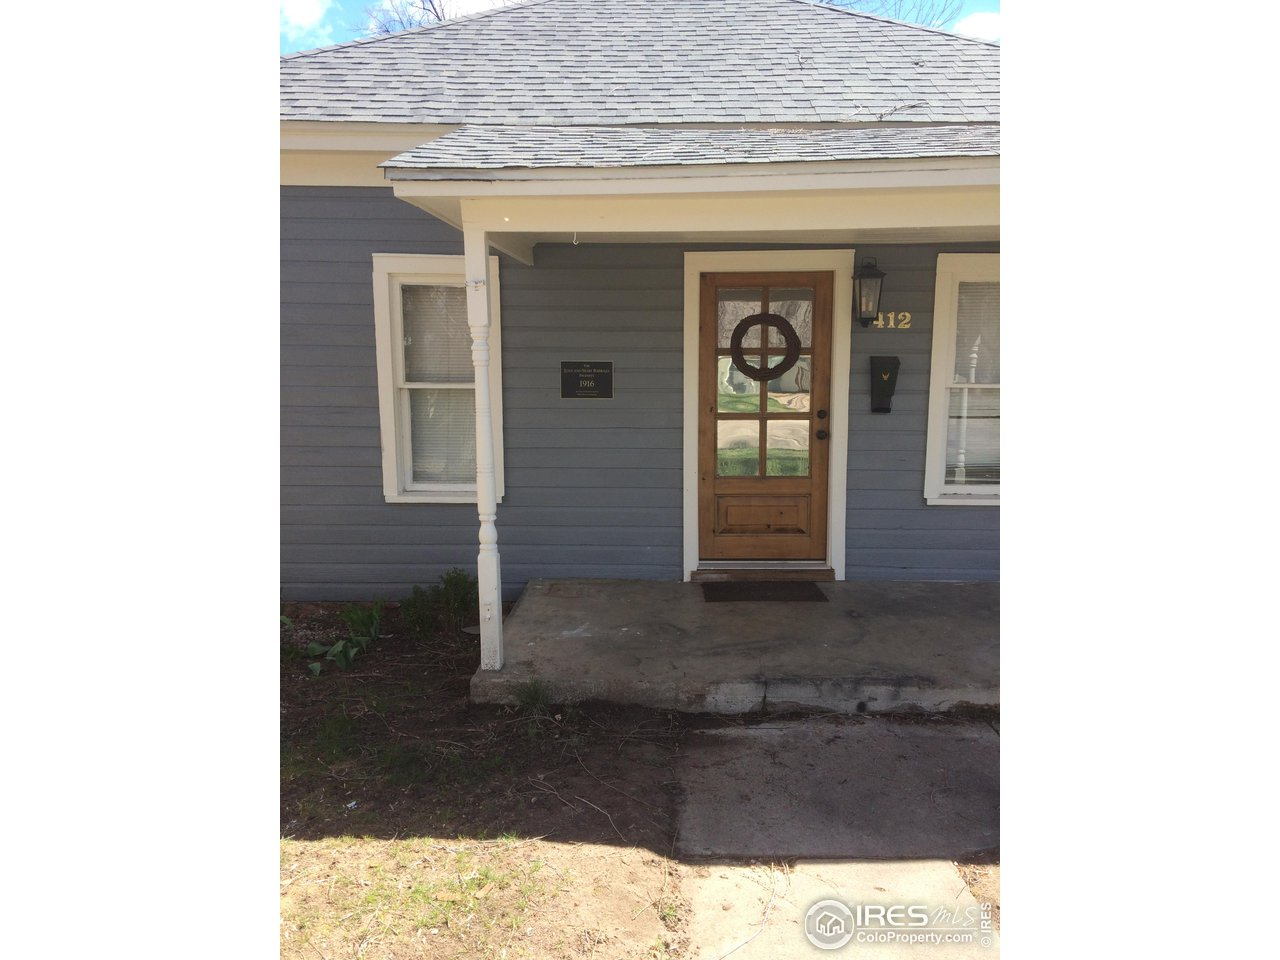 412 Wood St, Fort Collins CO 80521